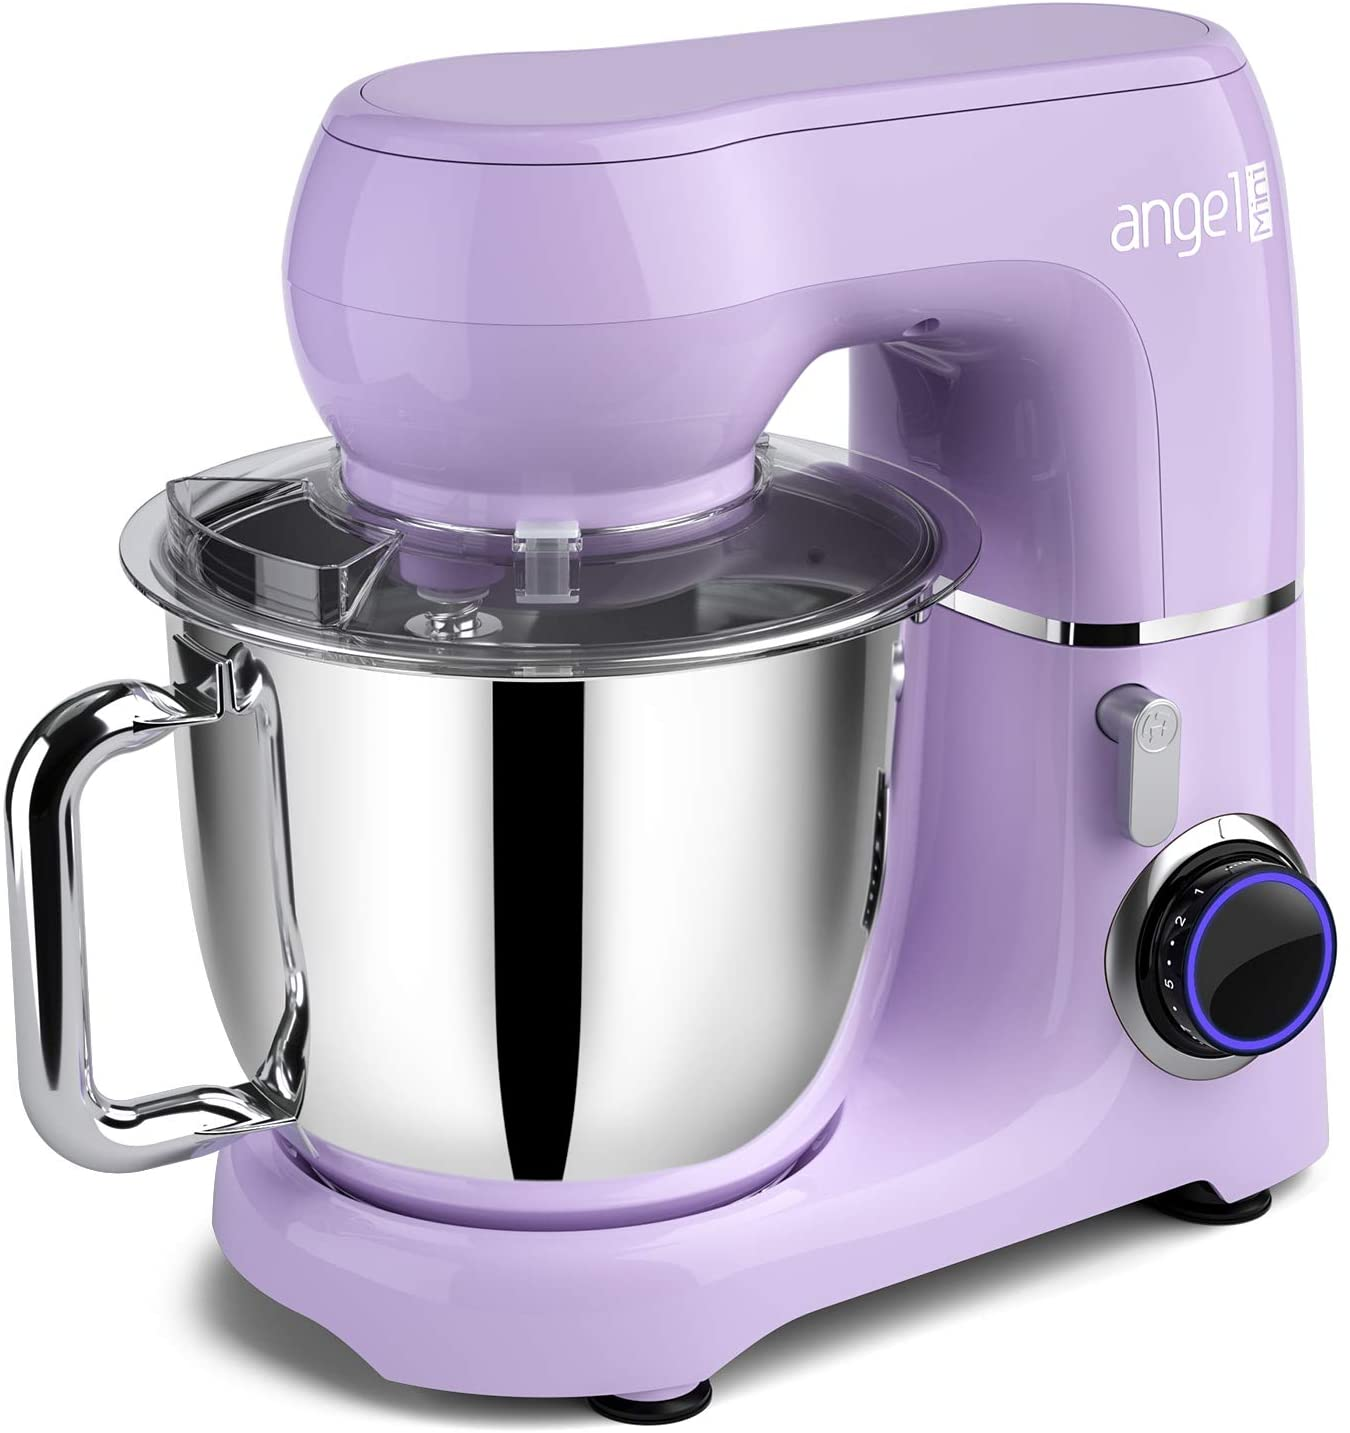 Mini angel Stand Mixer,10-Speed 5.5QT Kitchen Electric Mixer with DIY Color Stickers,Tilt-Head Food Mixer with Dough Hook, Wire Whisk, Flat Beater, Stainless Steel Bowl - Lavender